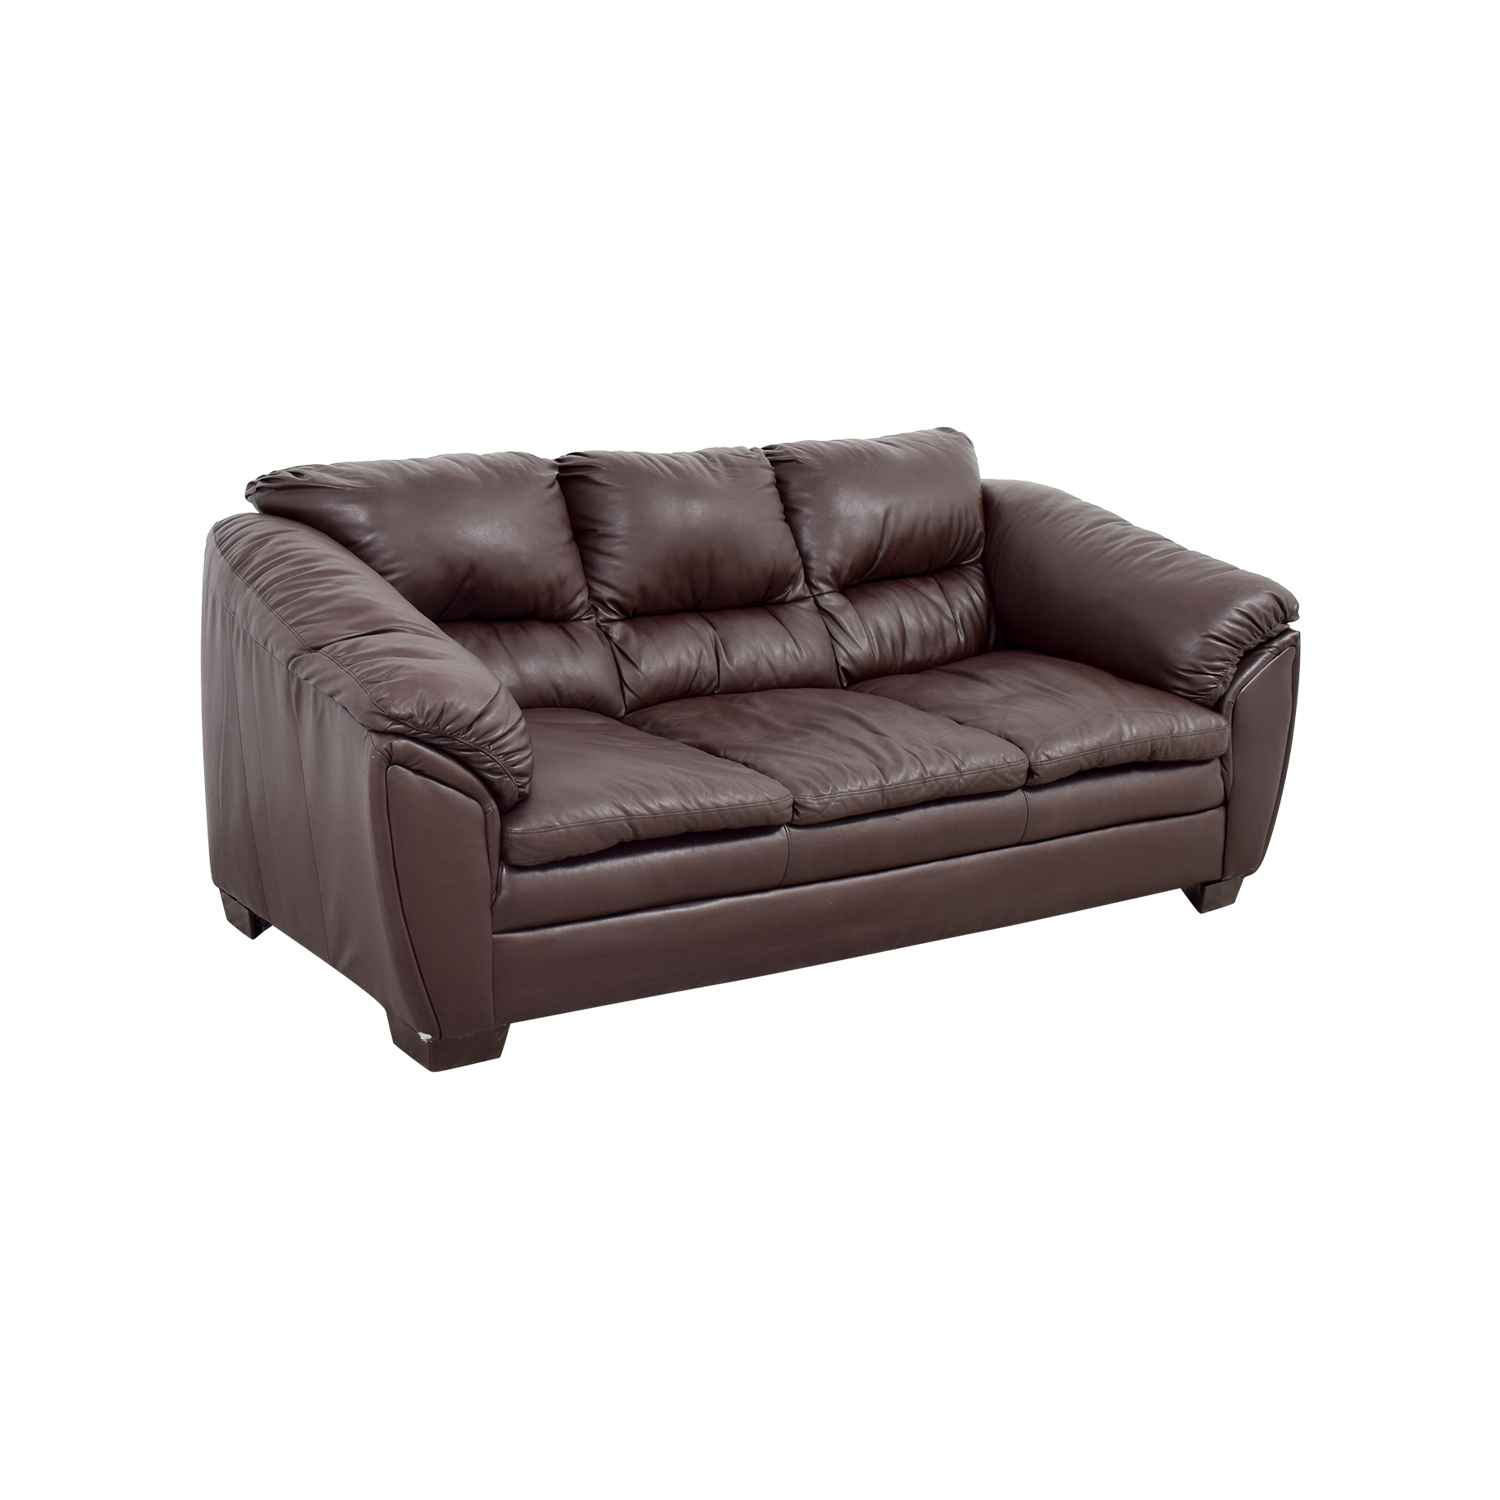 68 off brown leather sofa sofas for Second hand sofas